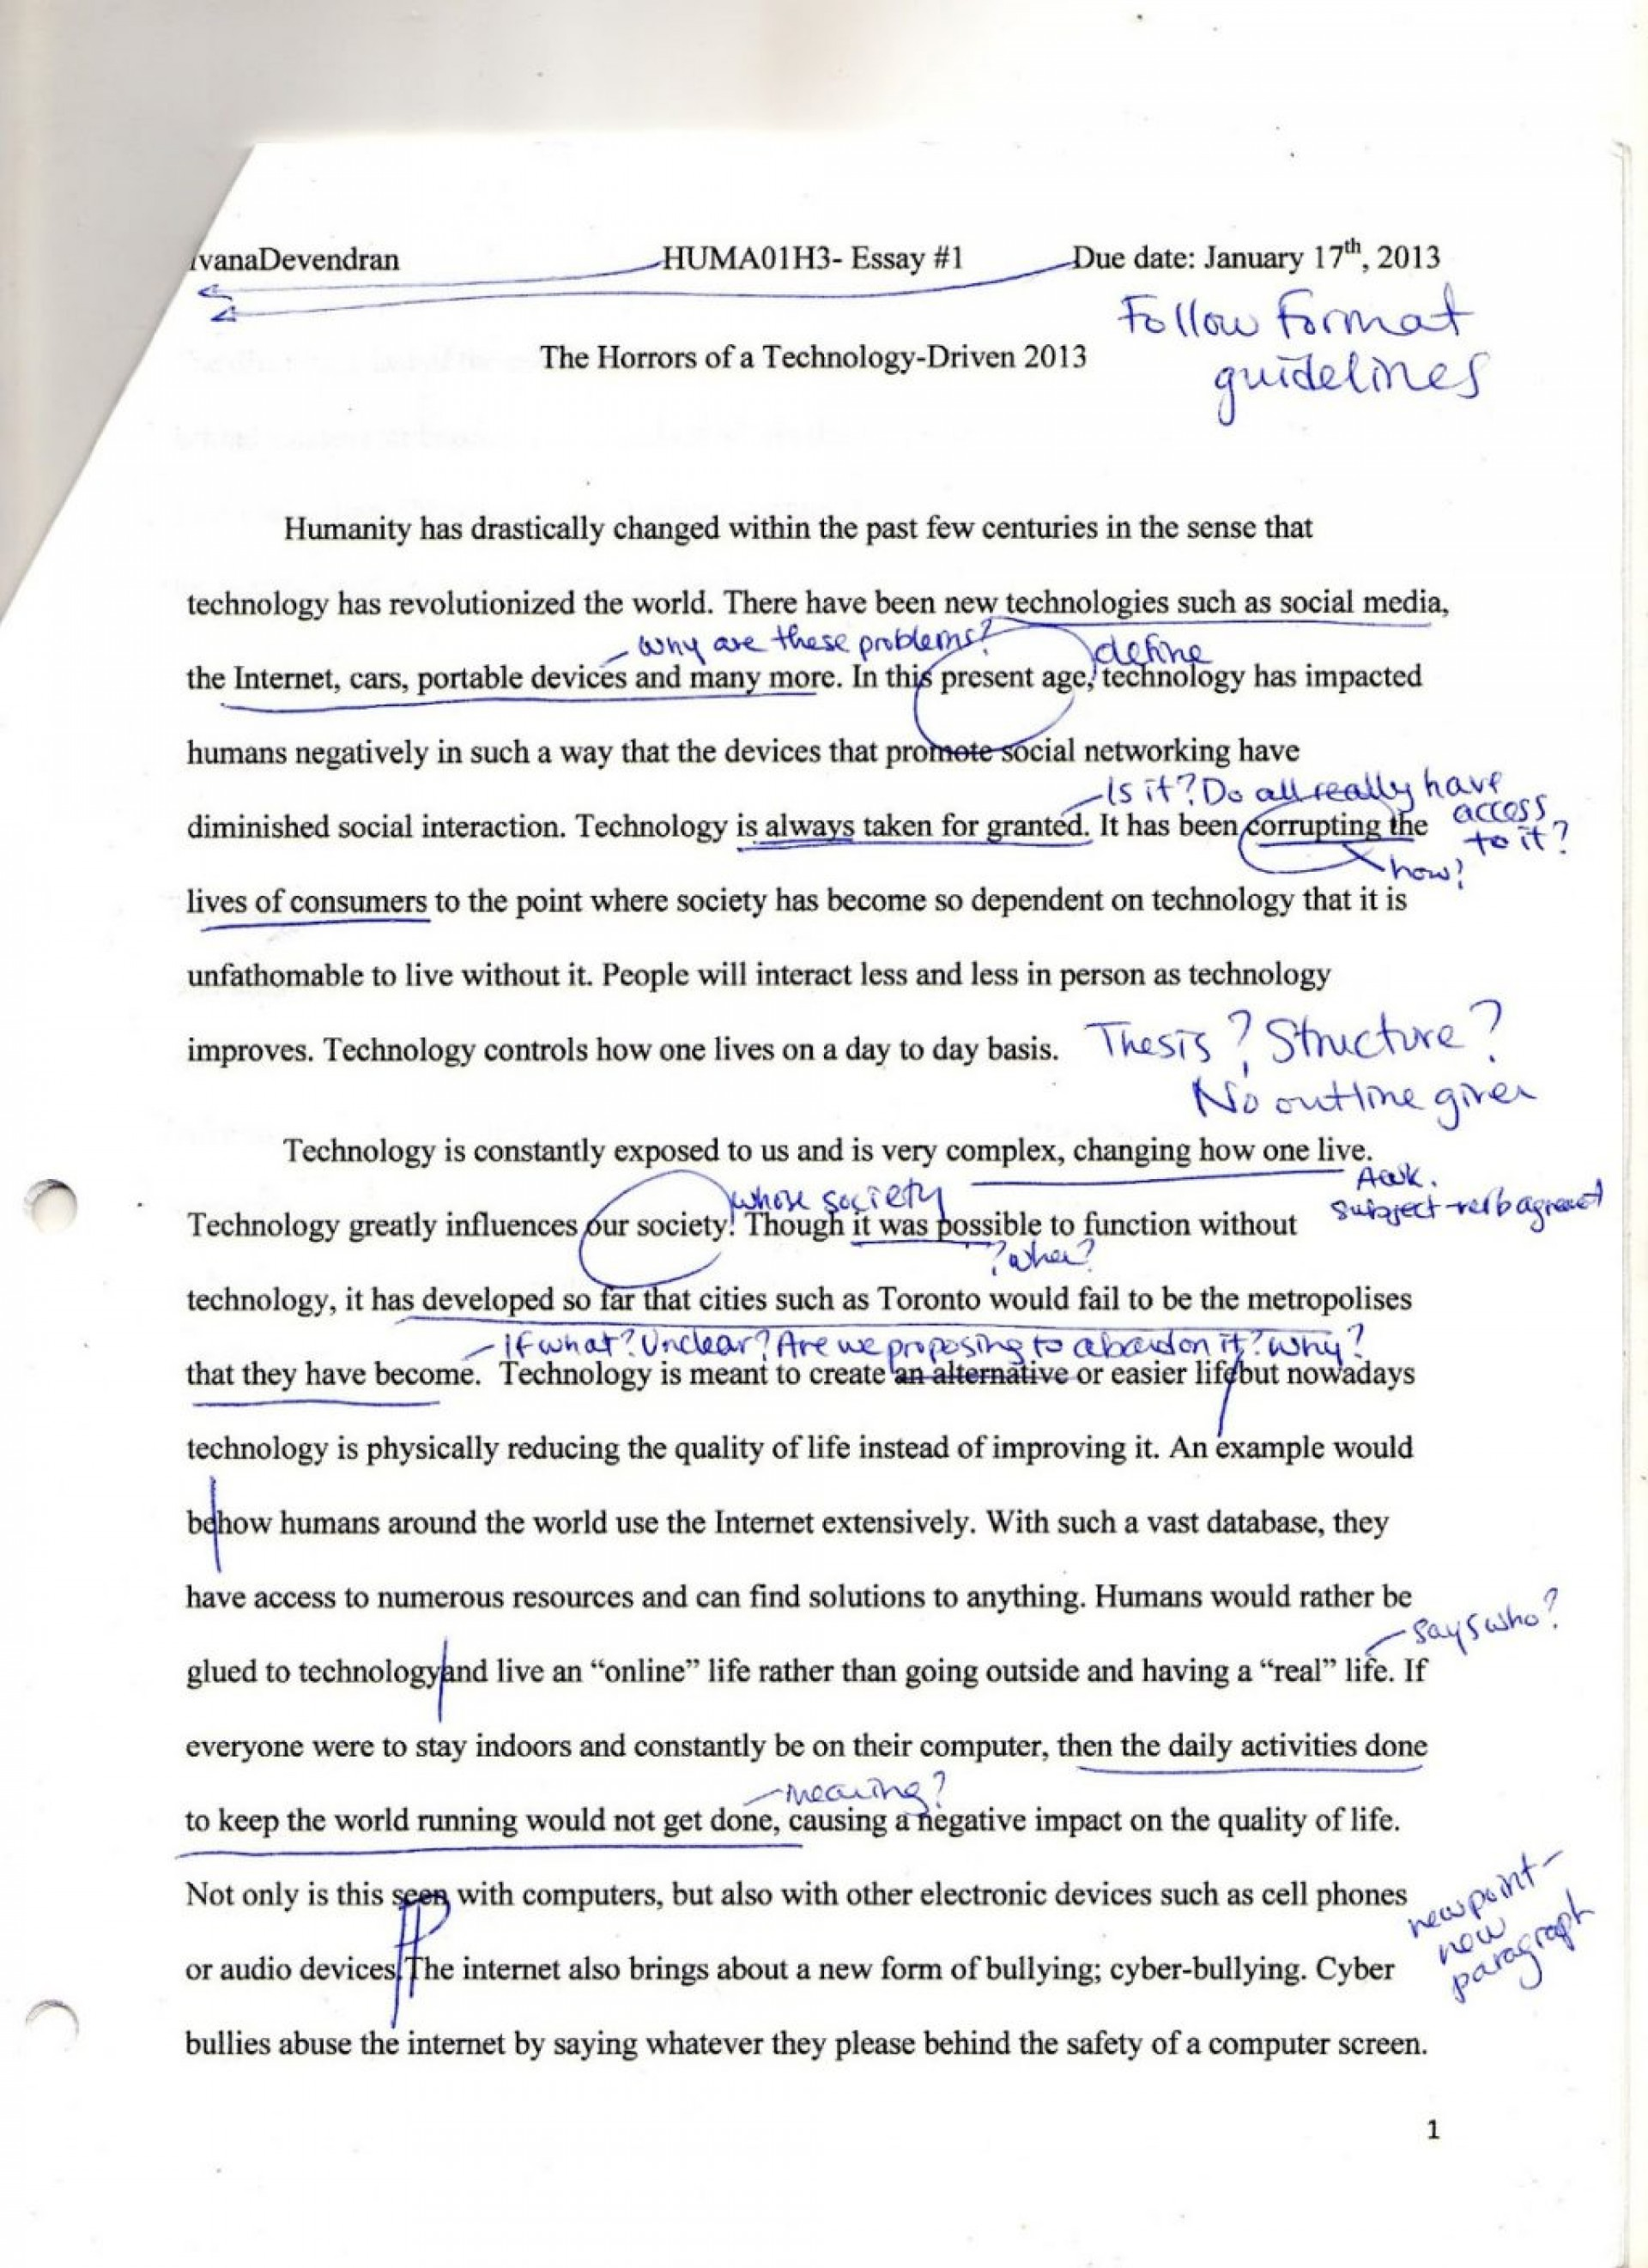 008 Essays Music Img008 What Should You Avoid In Writing Research Paper Humanities Appreciation Questions Classical History Persuasive20 1024x1410 Argumentative Magnificent Topics About 1920